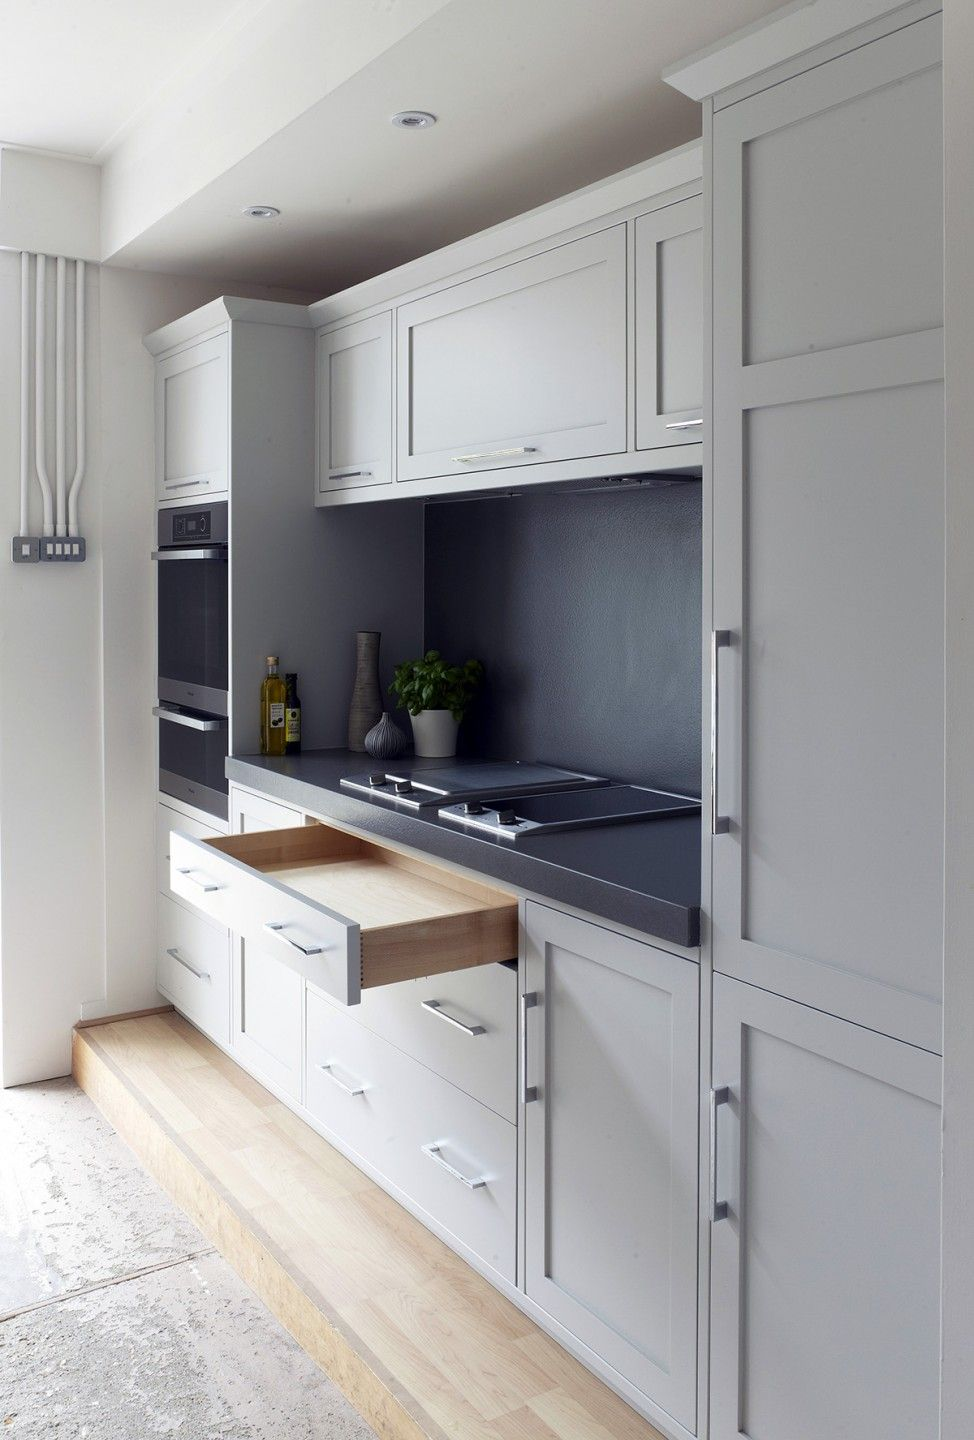 Interior design for a small kitchen and white drawer cabinet